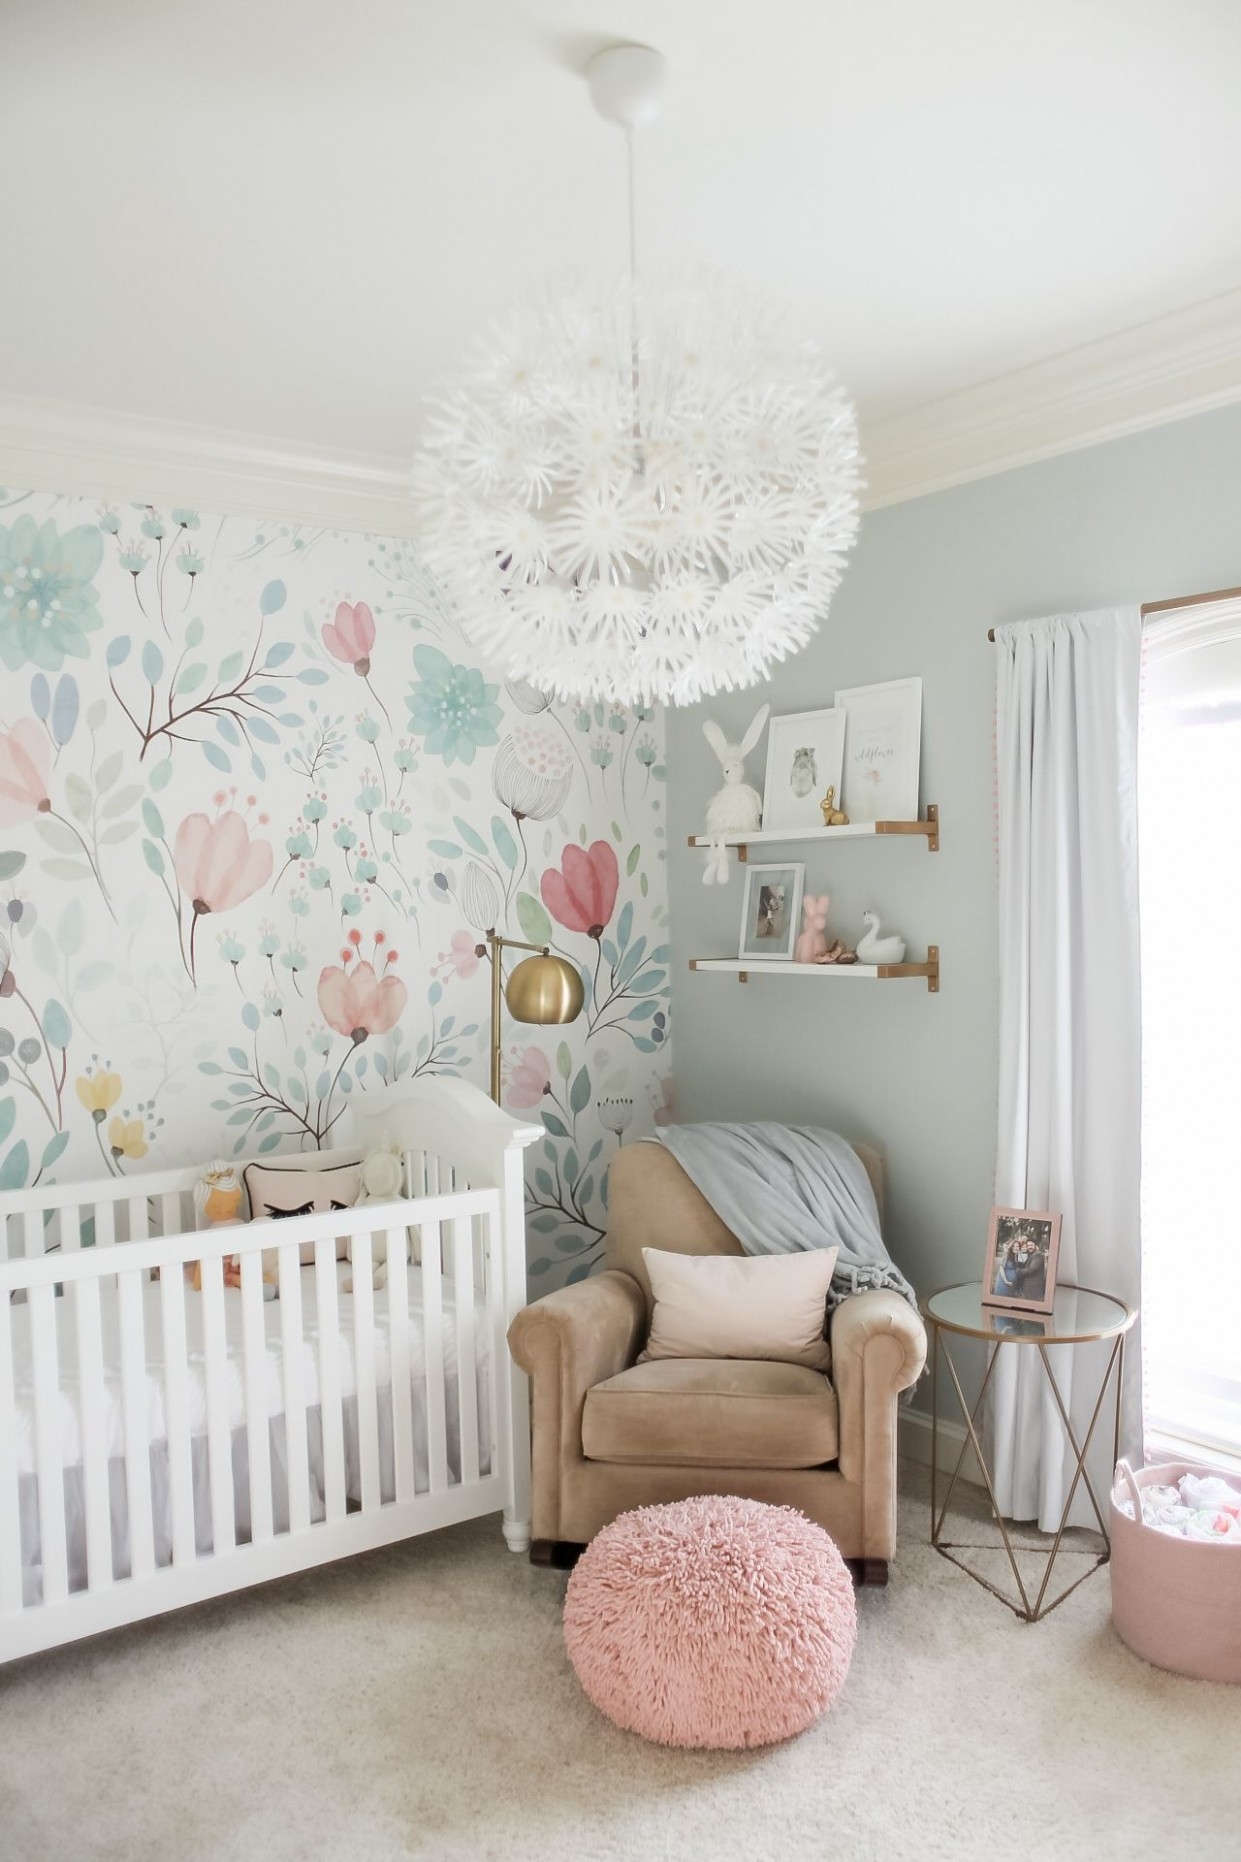 Bright and Whimsical Nursery for Colette - Project Nursery  Baby  - Baby Room Pinterest